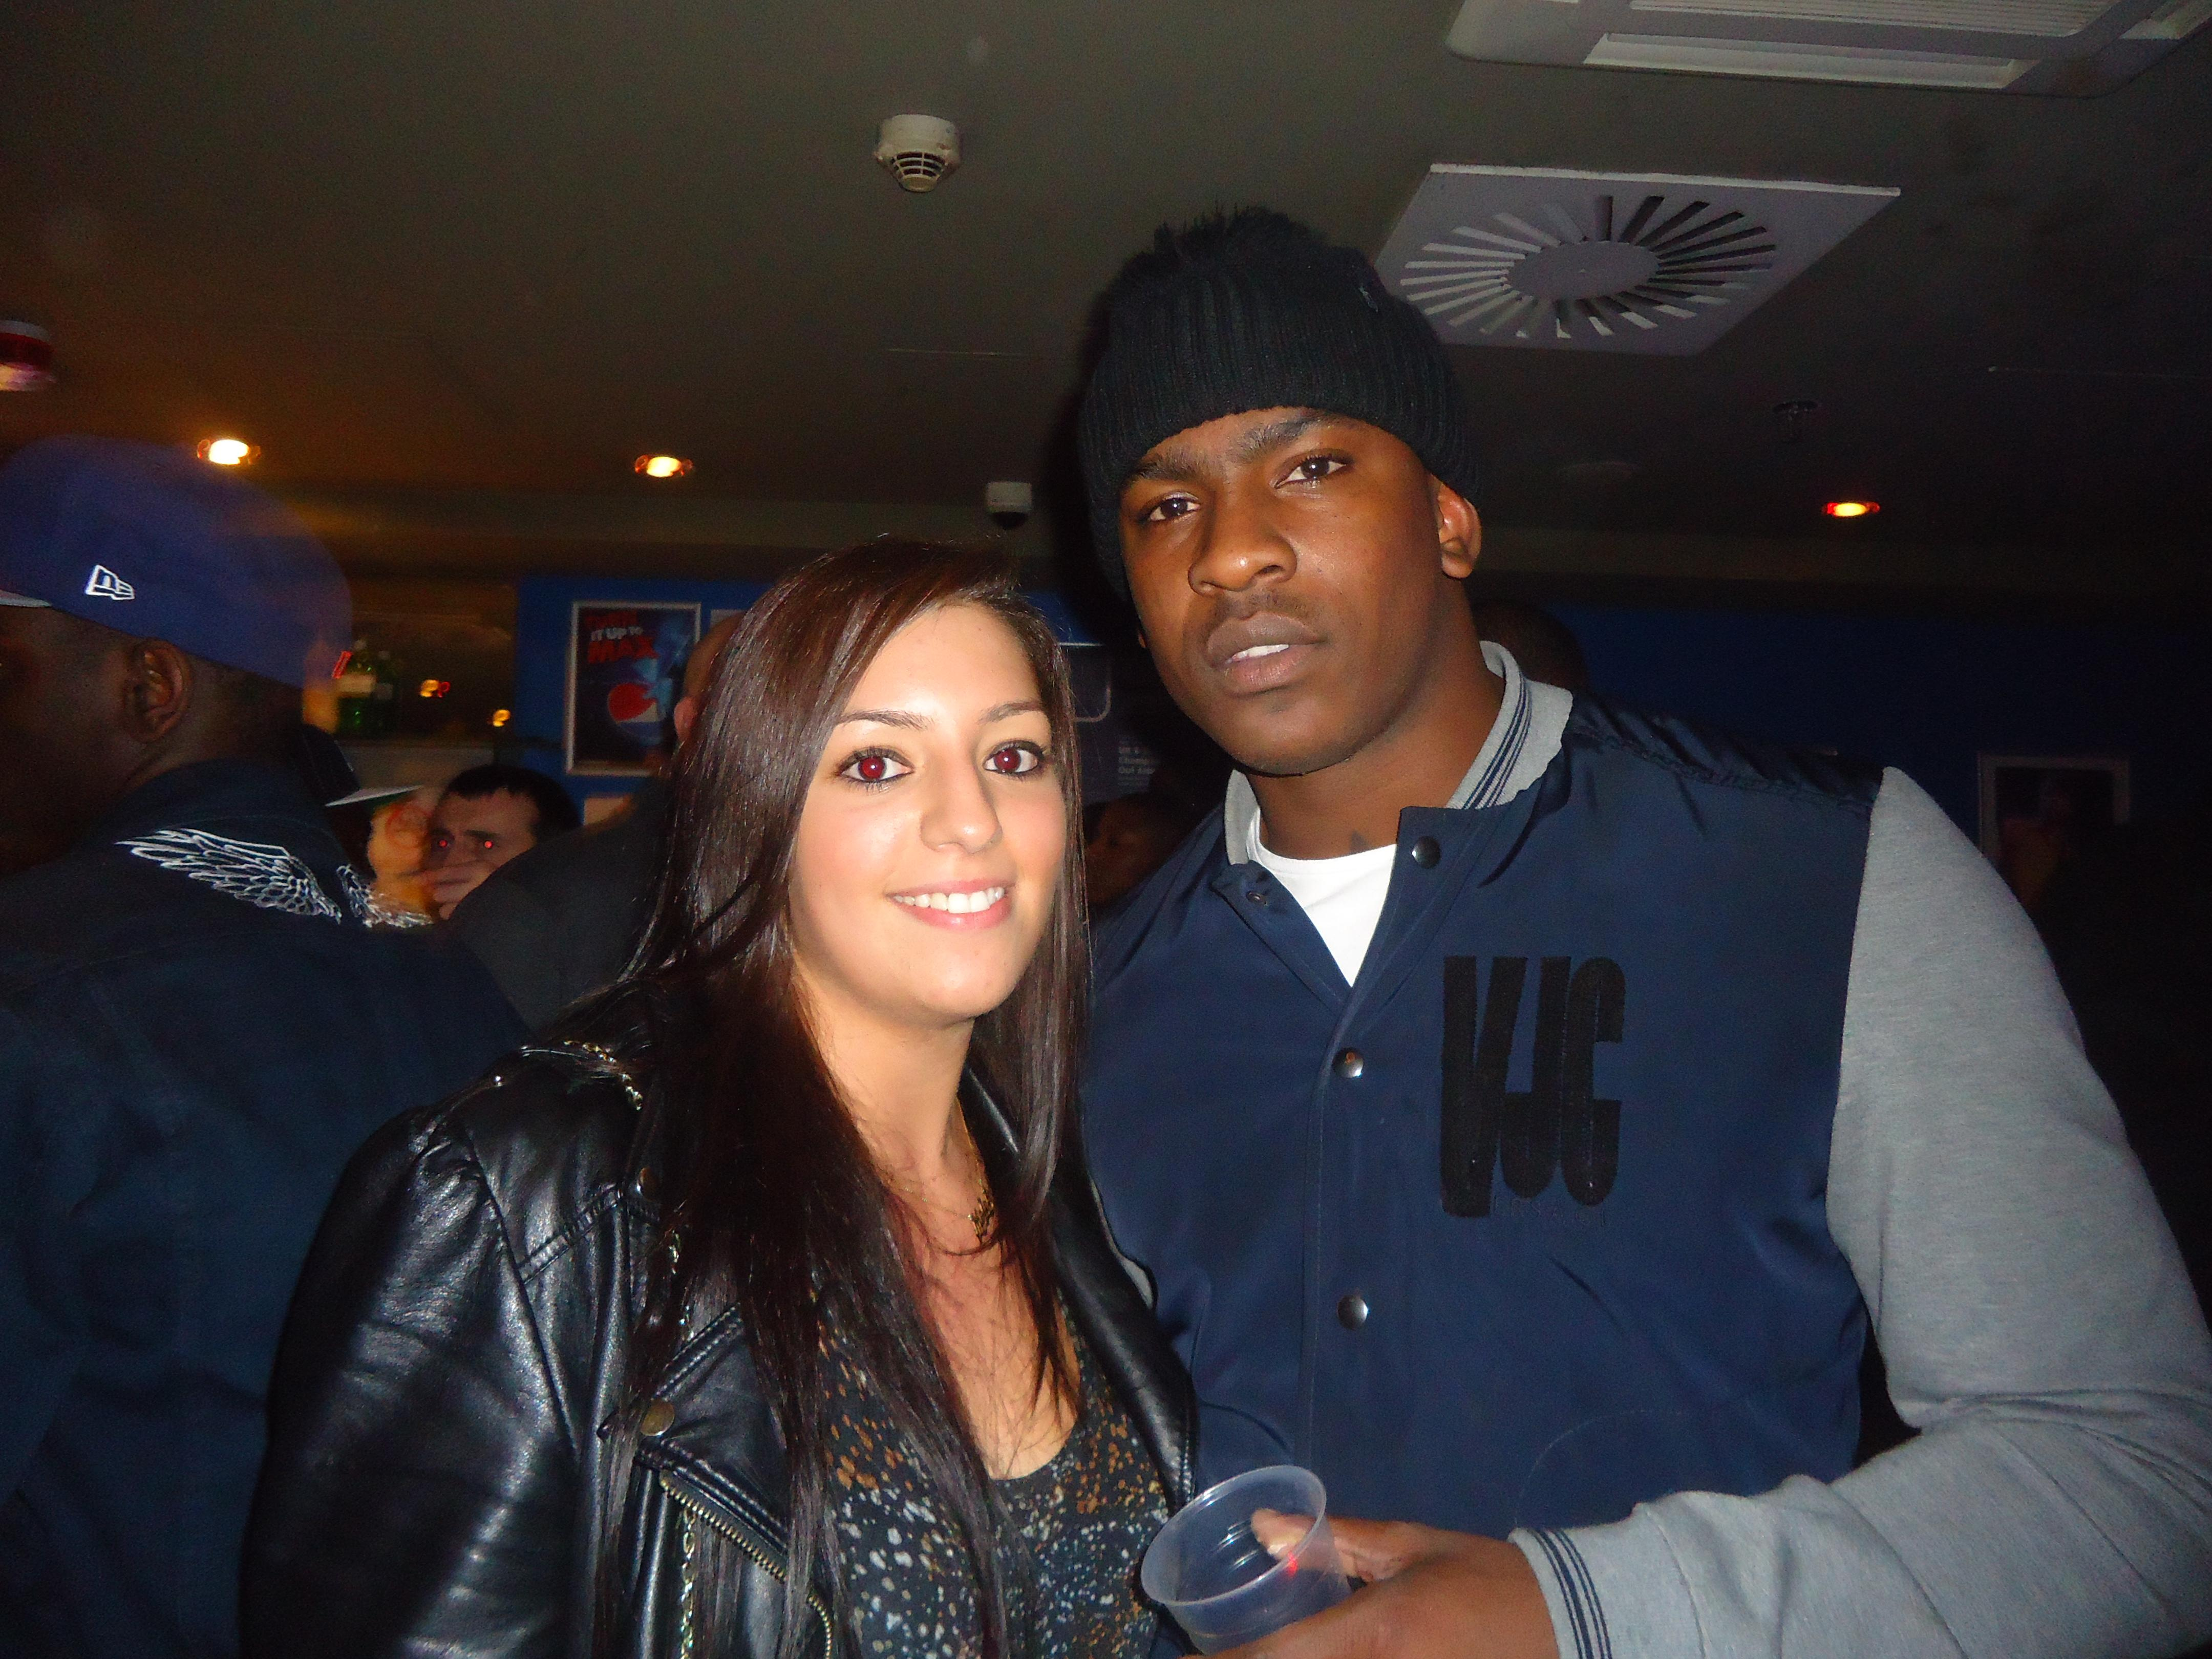 Skepta 'The Wedding Bells' Tour - Review - FLAVOURMAG